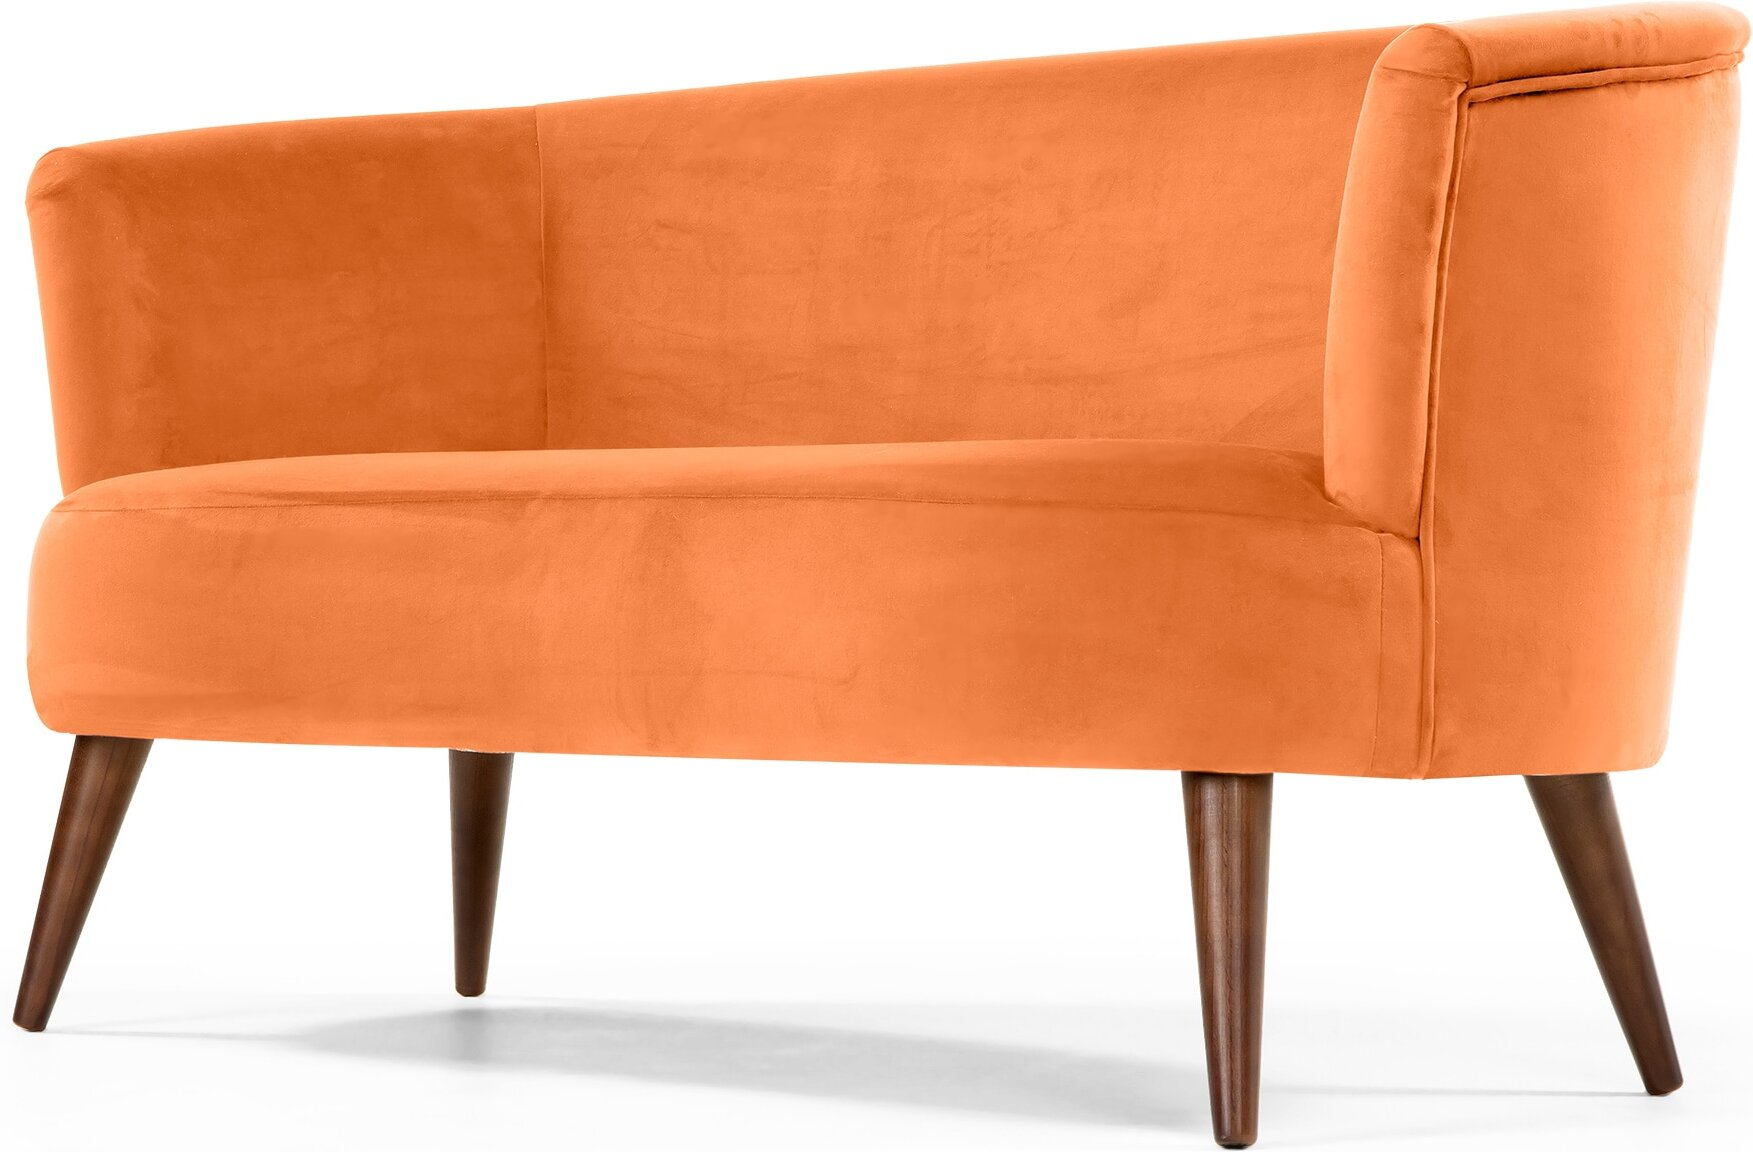 orange sofa uk high end sofas and sectionals buy cheap compare prices for best deals